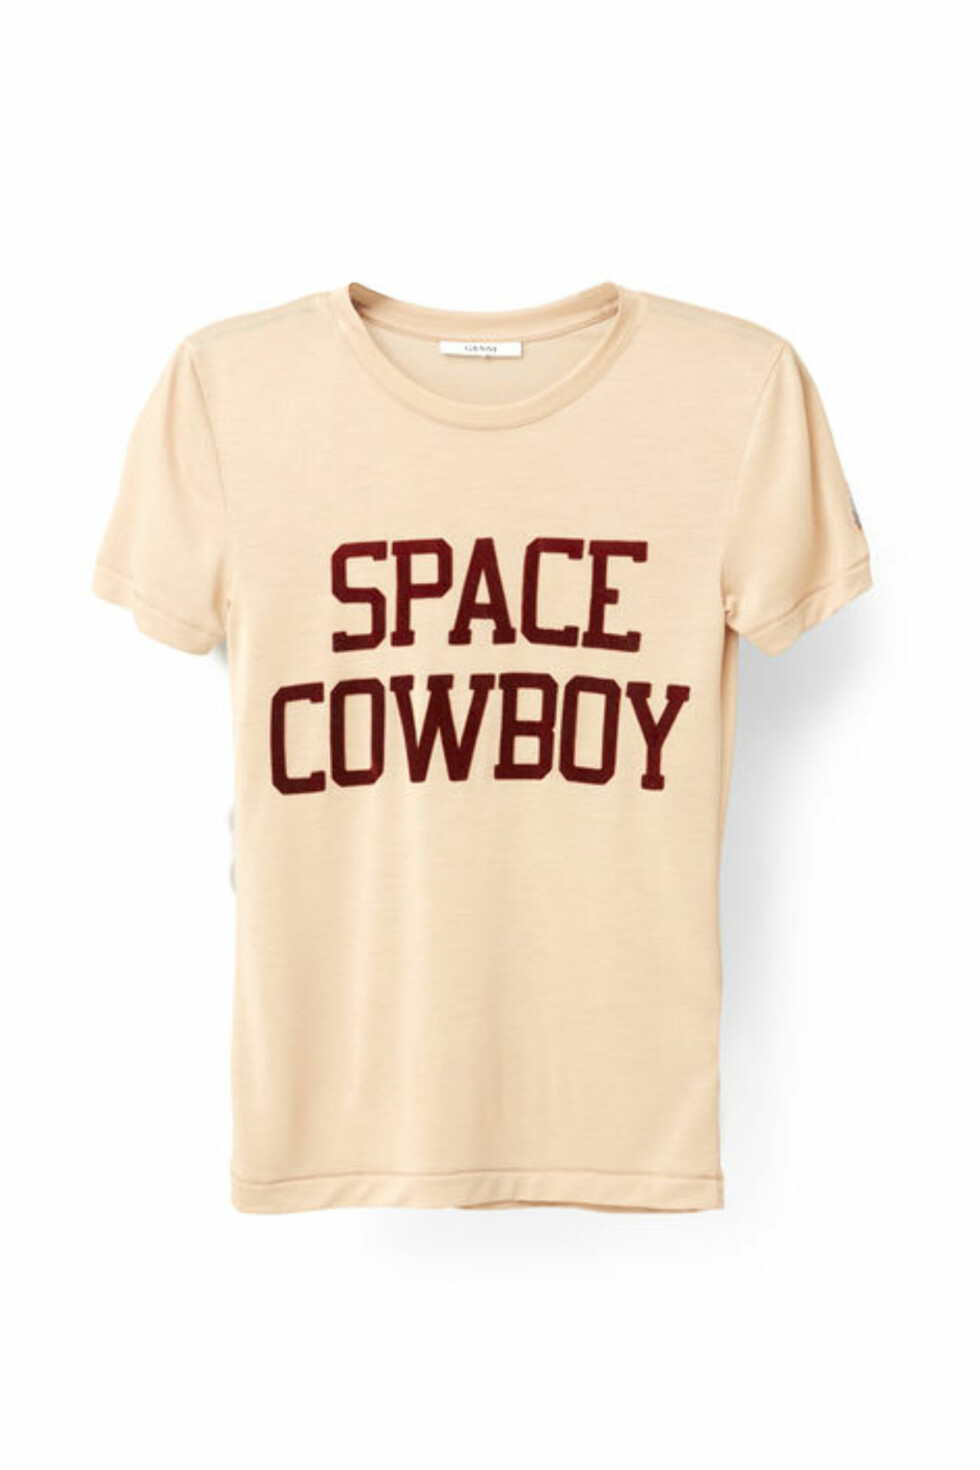 <strong>T-skjorte fra Ganni | kr 799 | http:</strong>//www.ganni.com/shop/tops-and-t-shirts/linfield-lyocell-t-shirt%2C-space-cowboy/T1797.html?dwvar_T1797_color=Cuban%20Sand